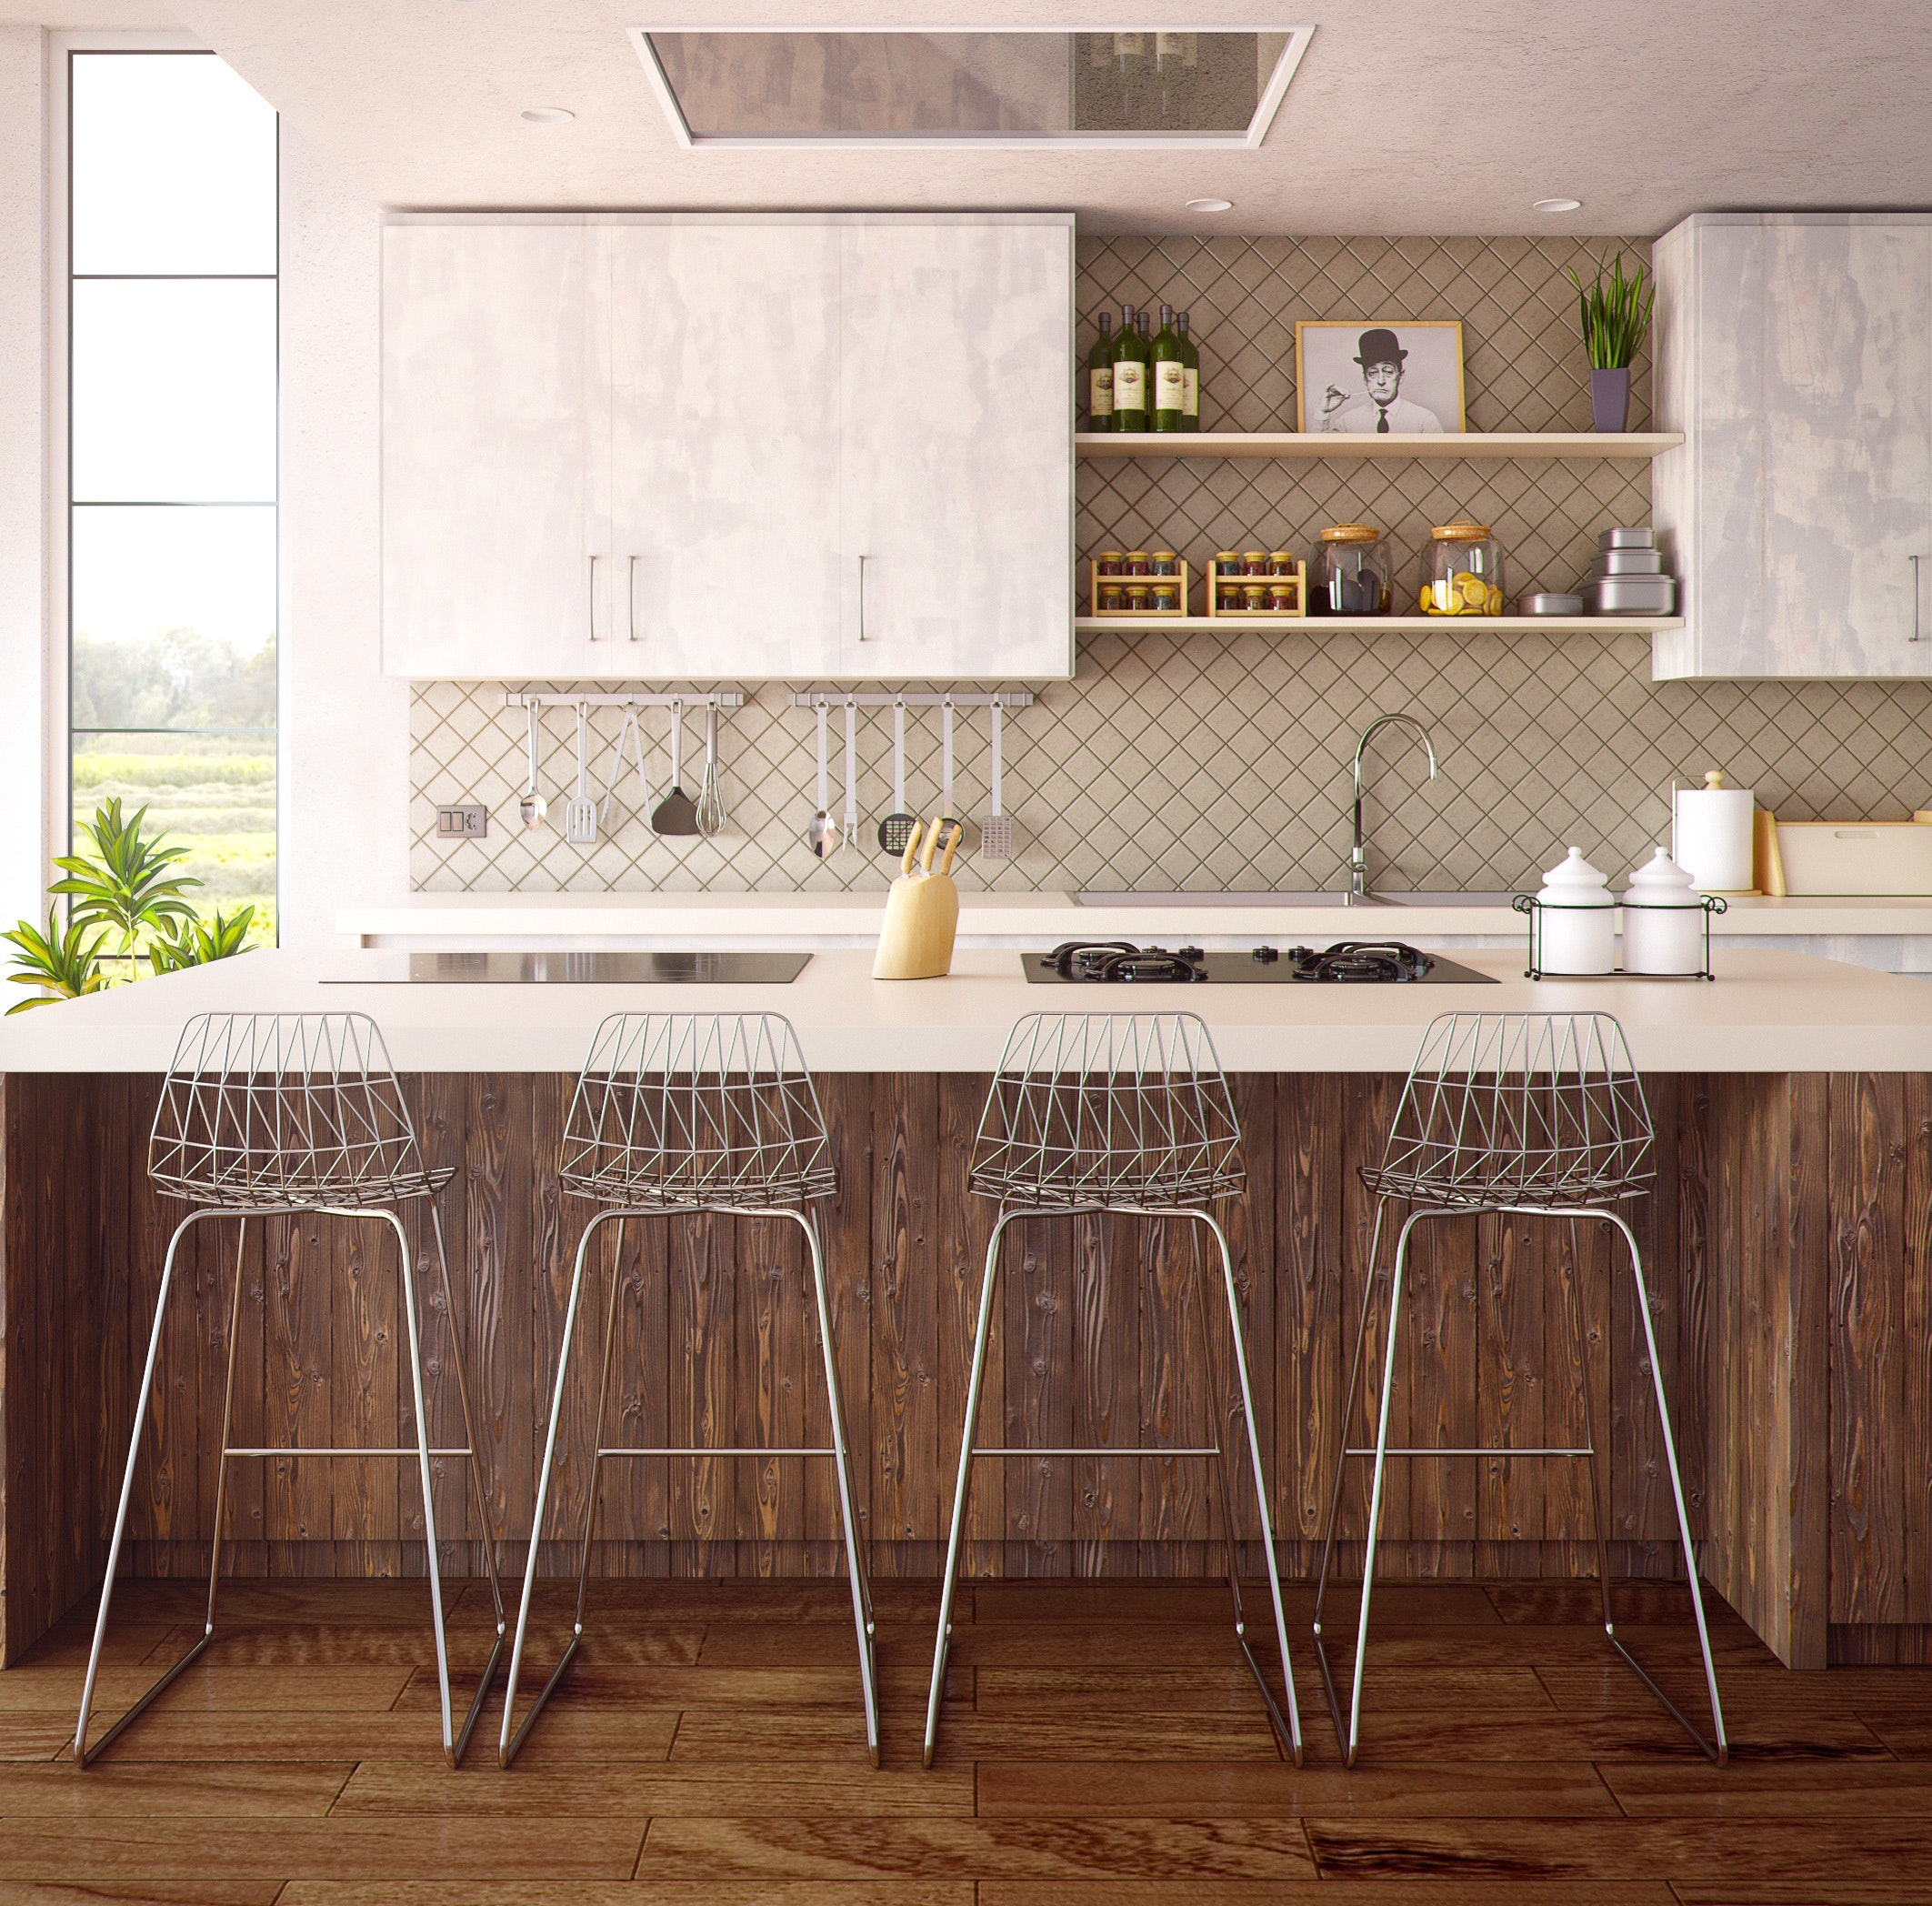 Awe Inspiring 6 Timeless Interior Design Ideas For Your Kitchen Daily Home Interior And Landscaping Elinuenasavecom